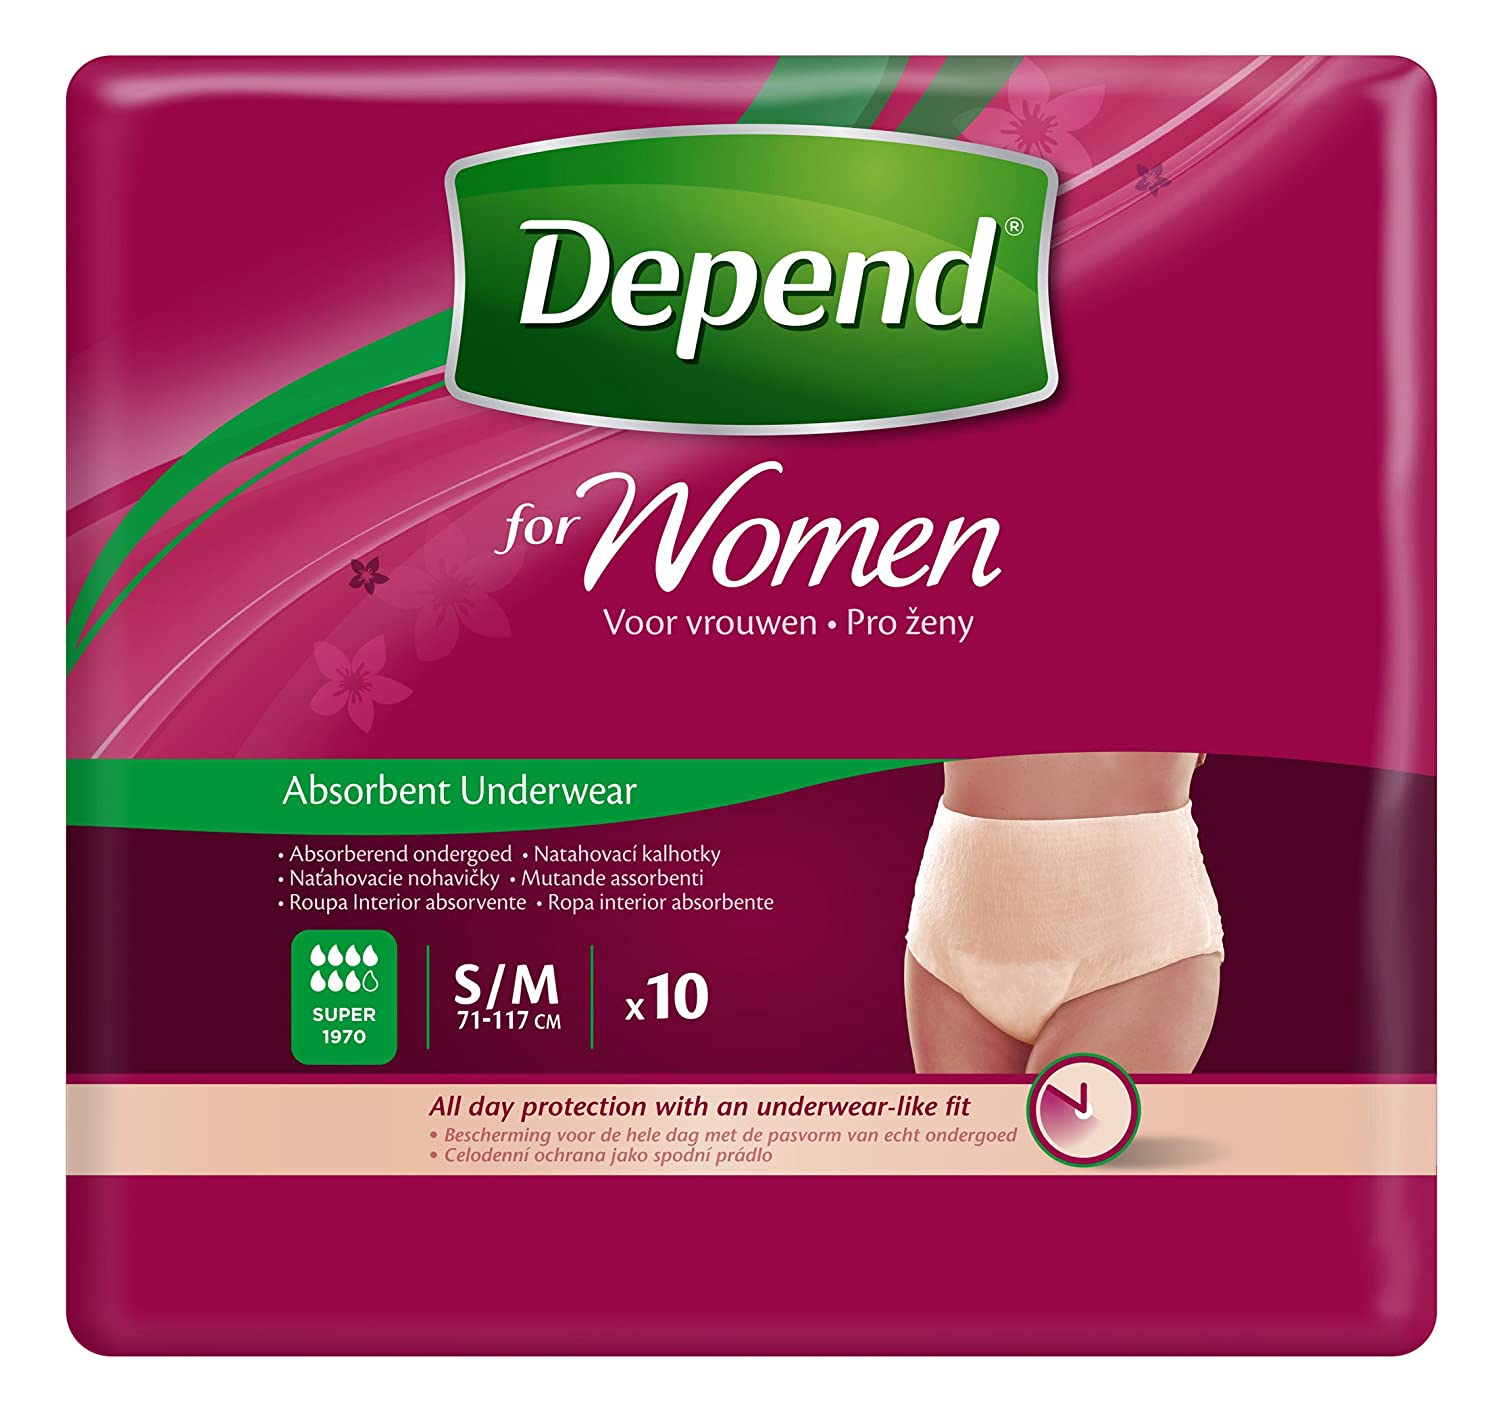 Buy Depend Pull Up Adult Diapers for Women Small/Medium Size - 28-46 inches  Waist (10 Count) Online at Low Prices in India - Amazon.in